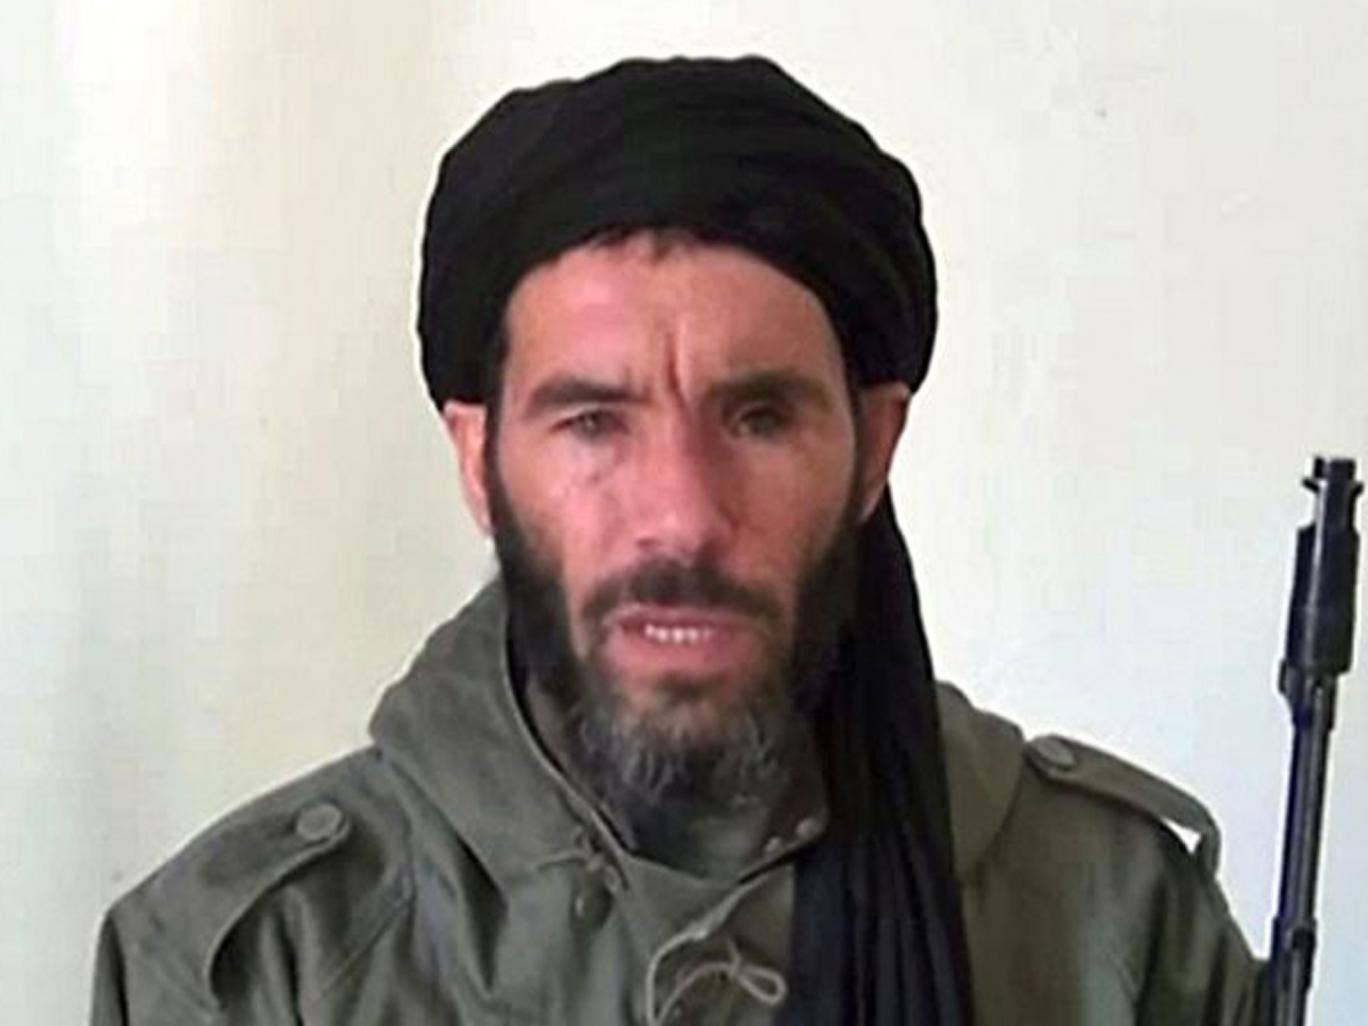 Mokhtar Belmokhtar claimed responsibility for the seizure of dozens of foreign hostages at the In Amenas plant in January